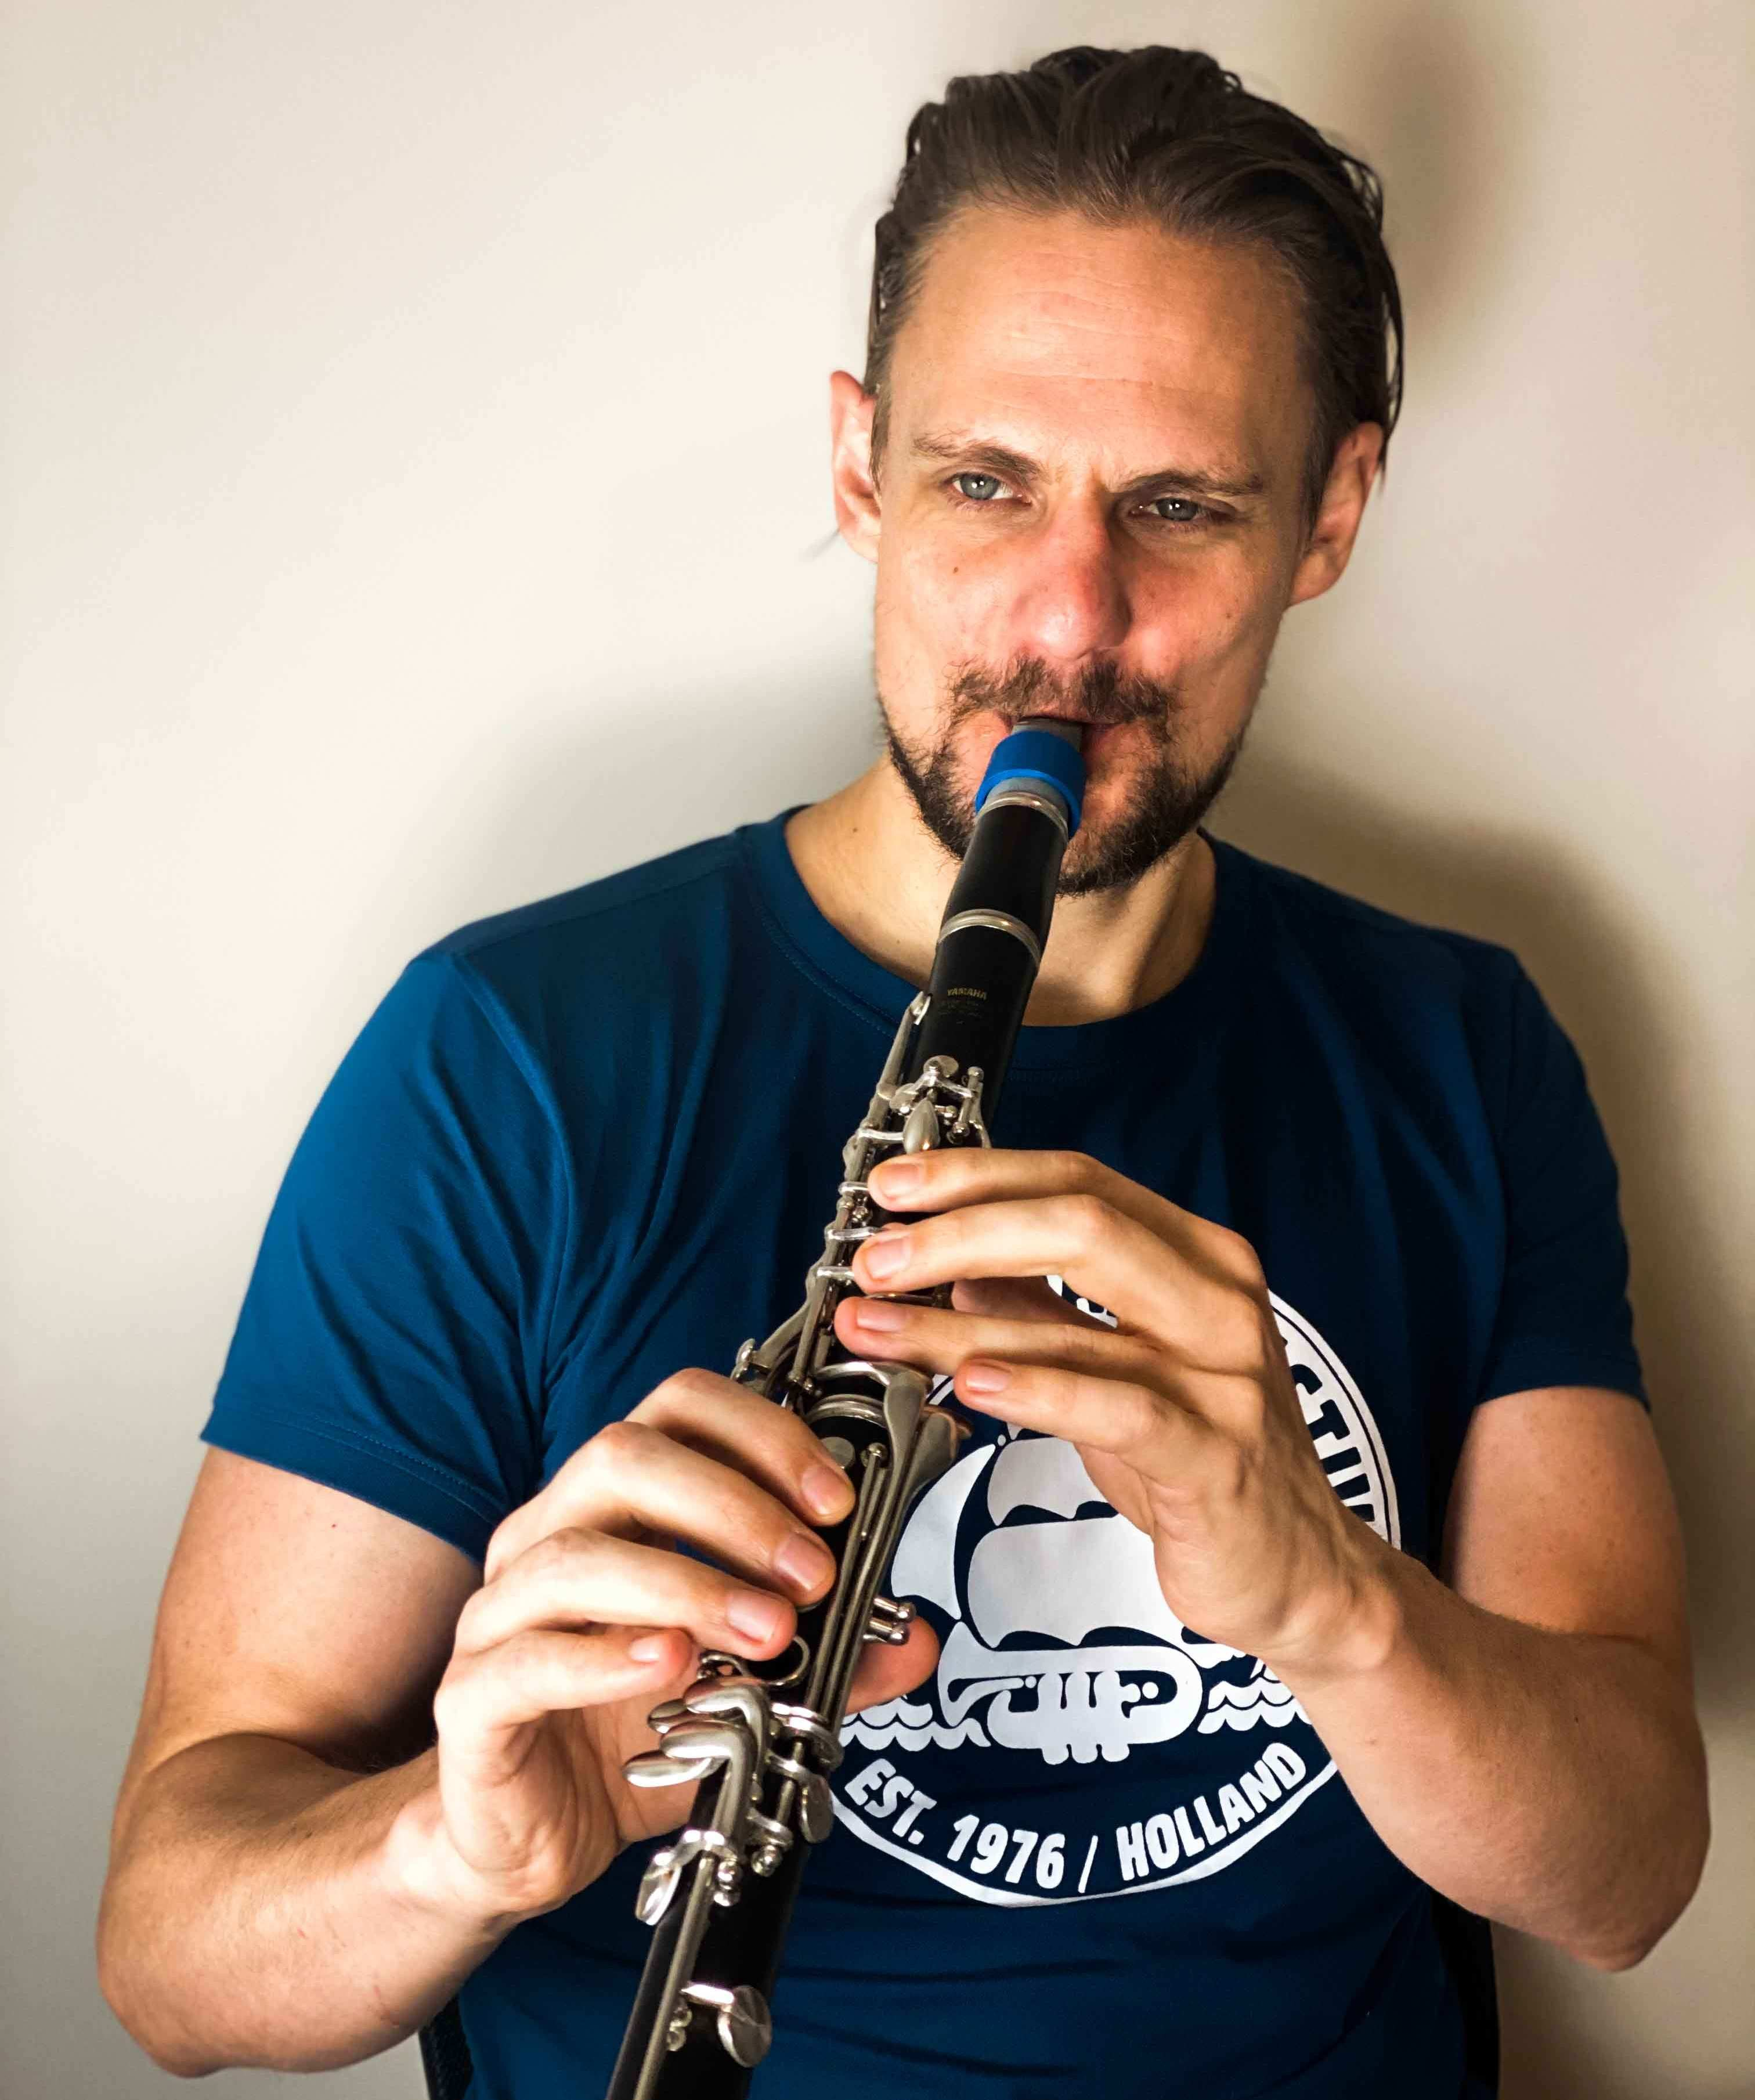 Steve Kortyka plays a Syos mouthpiece for Bb clarinet